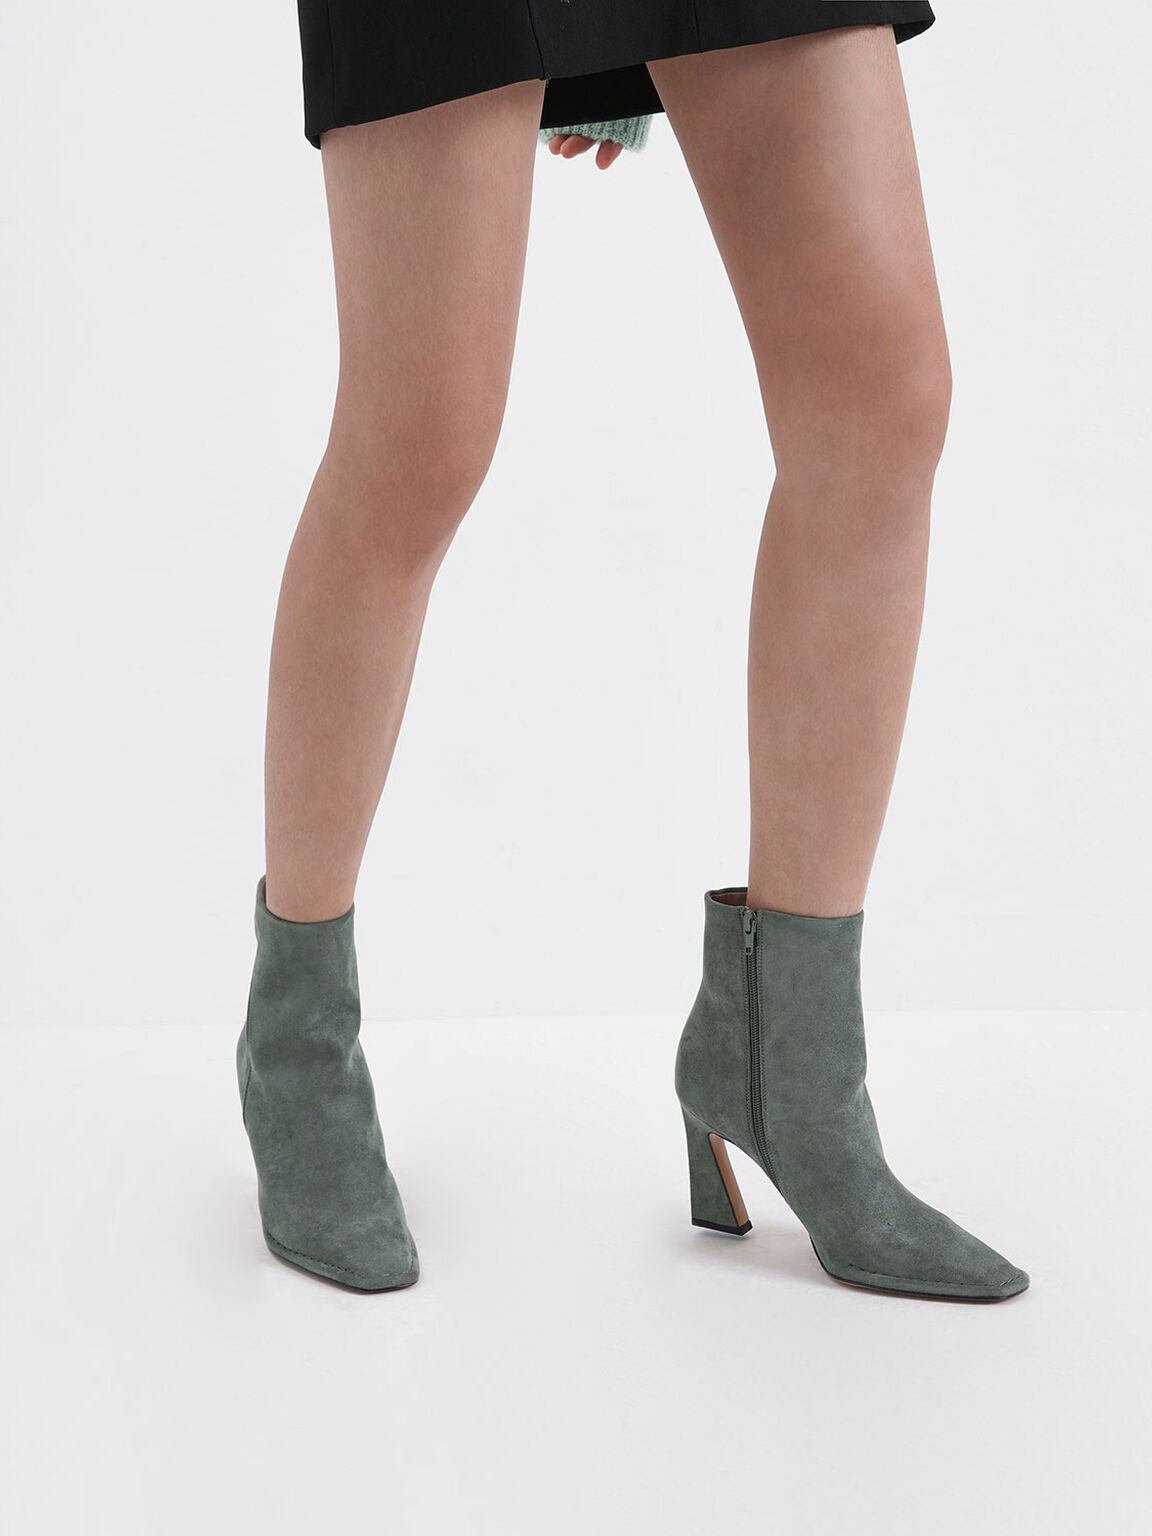 Textured Sculptural Heel Ankle Boots, Sage Green, hi-res